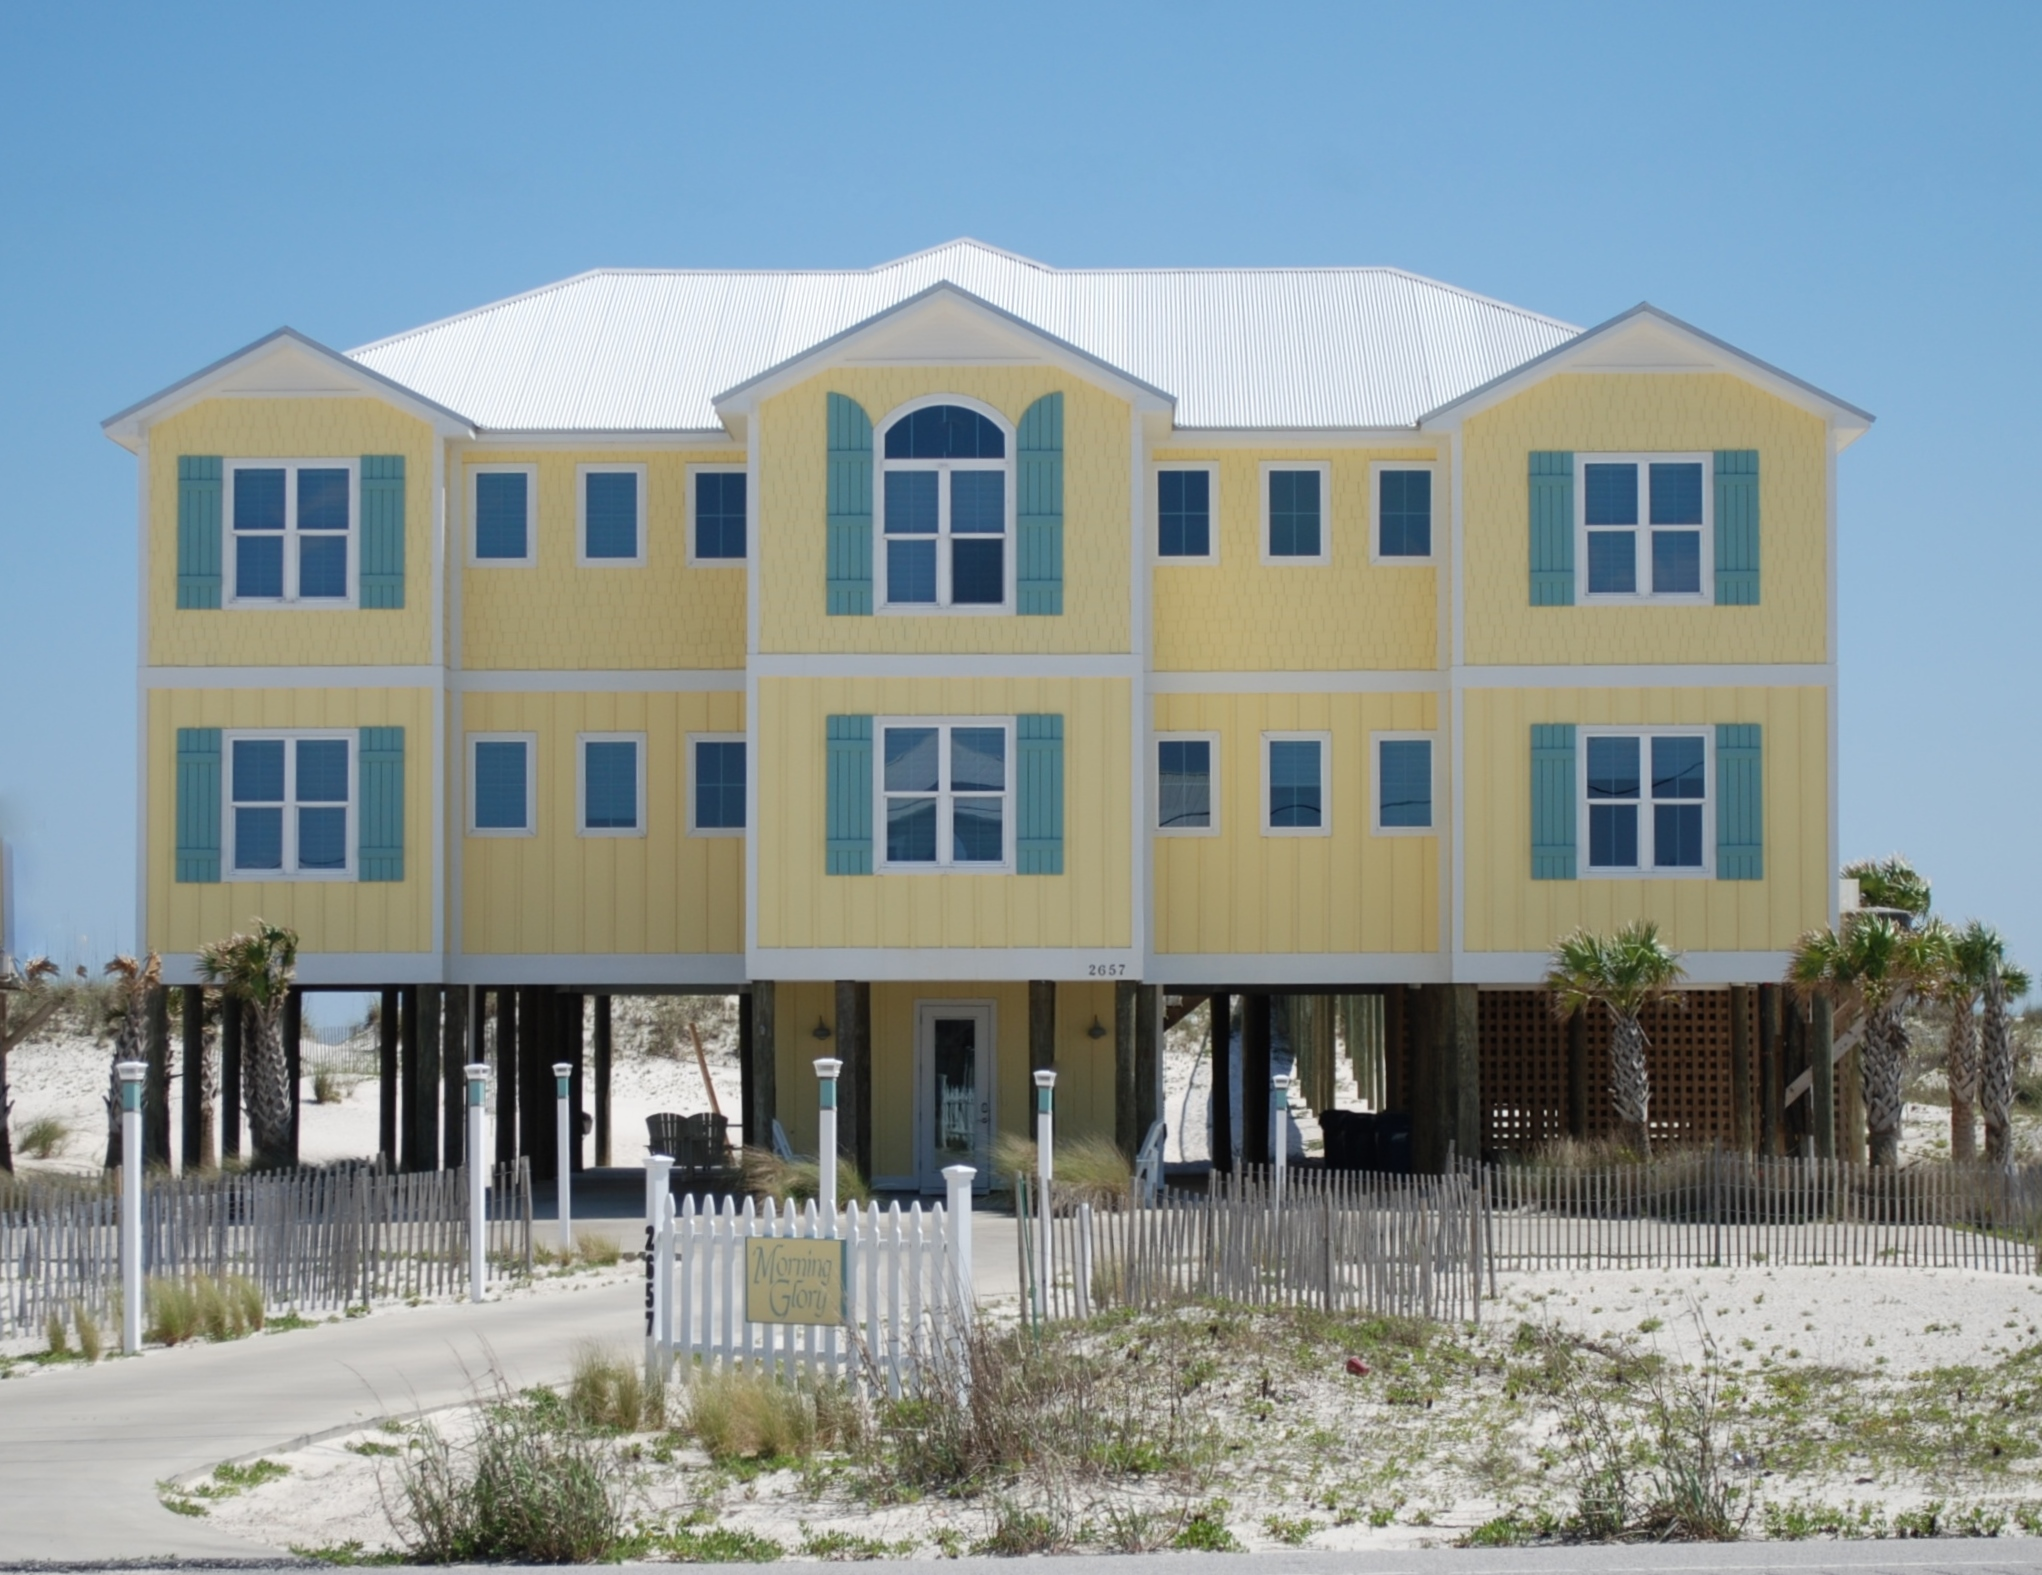 Morning Glory Beach House Gulf Shores Alabama Design/Build Project